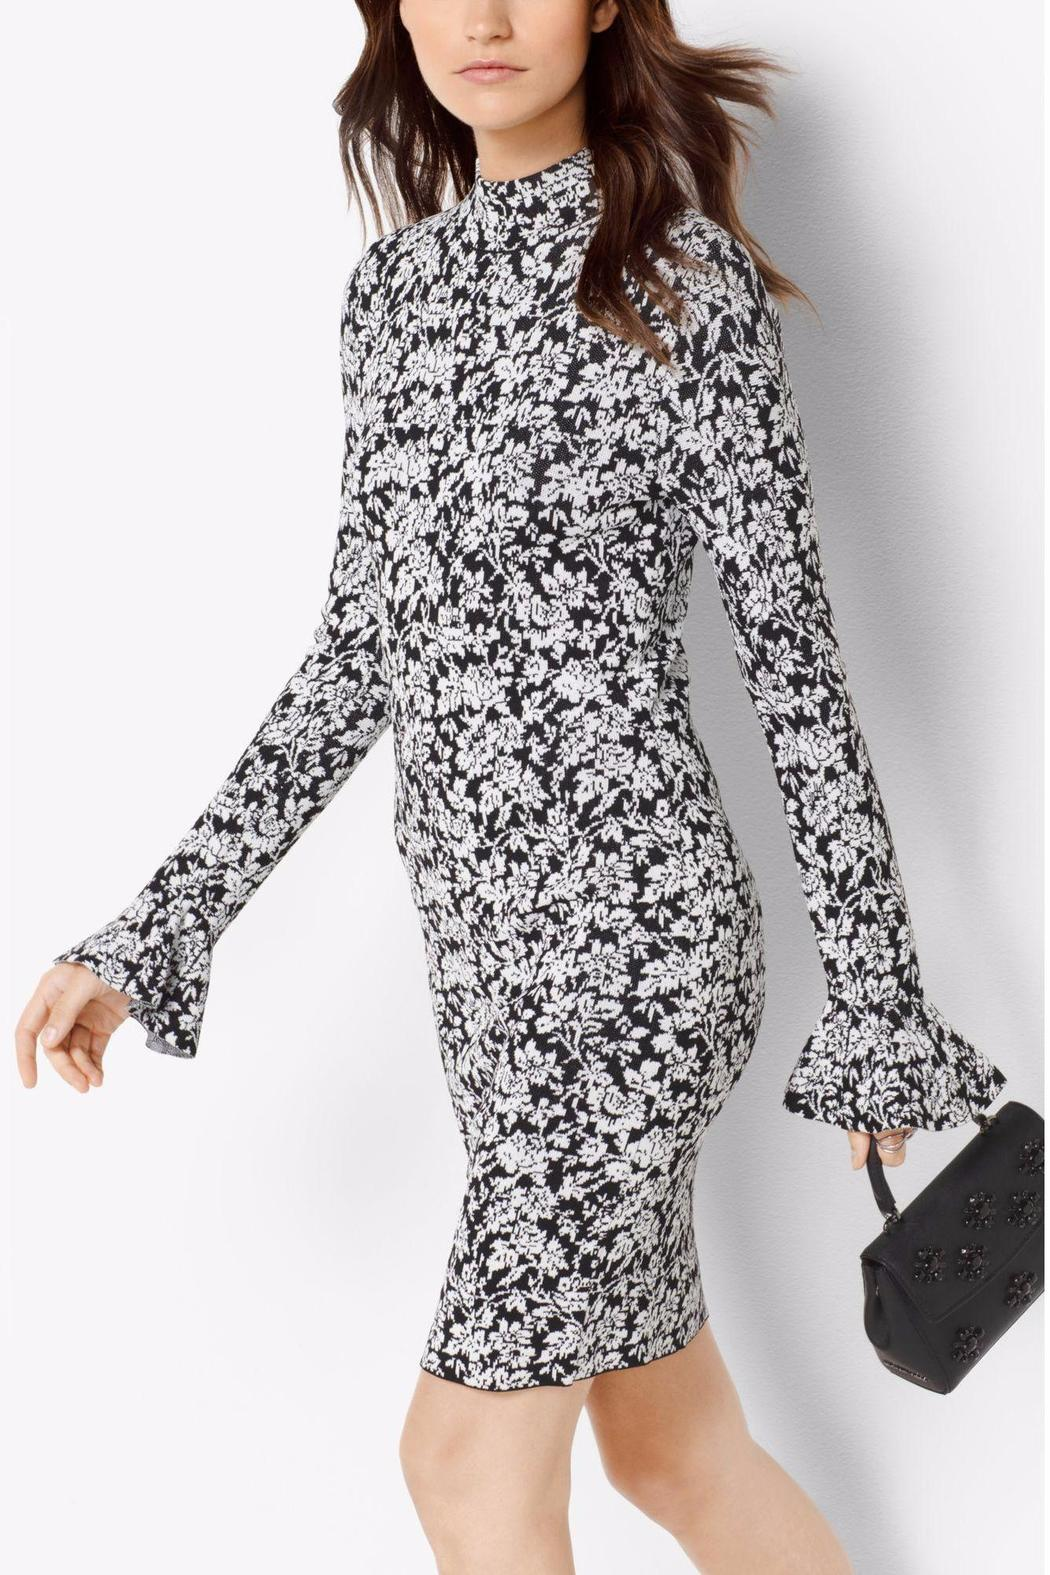 b99f6fe9243 Michael by Michael Kors Floral Bell Sleeve Dress from Toronto by The ...